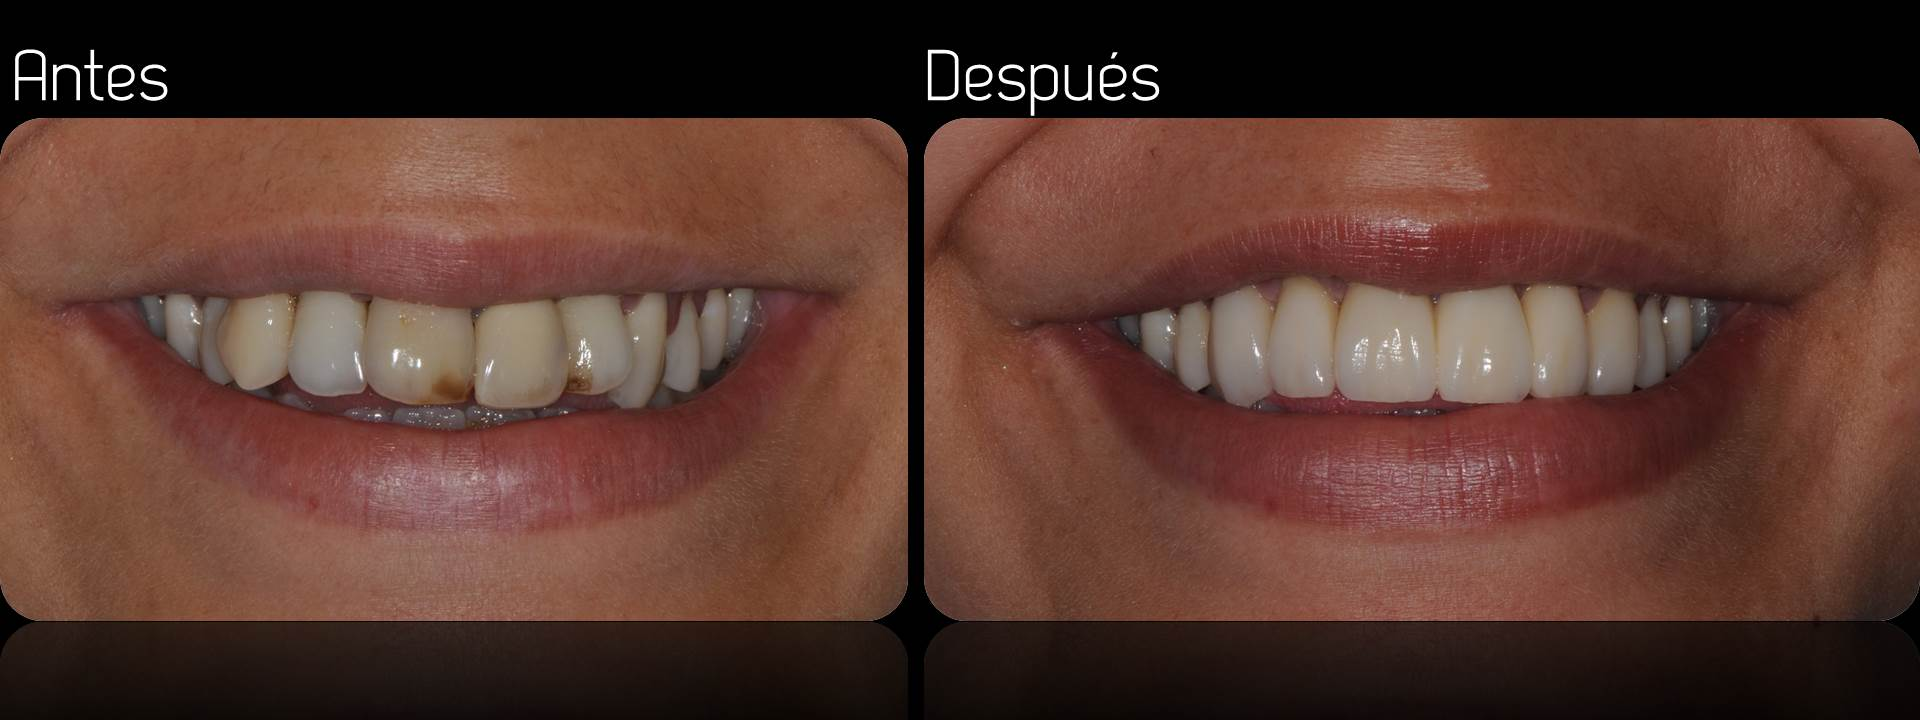 Porcelain crowns case 1 estudi dental barcelona for Estudi dental barcelona